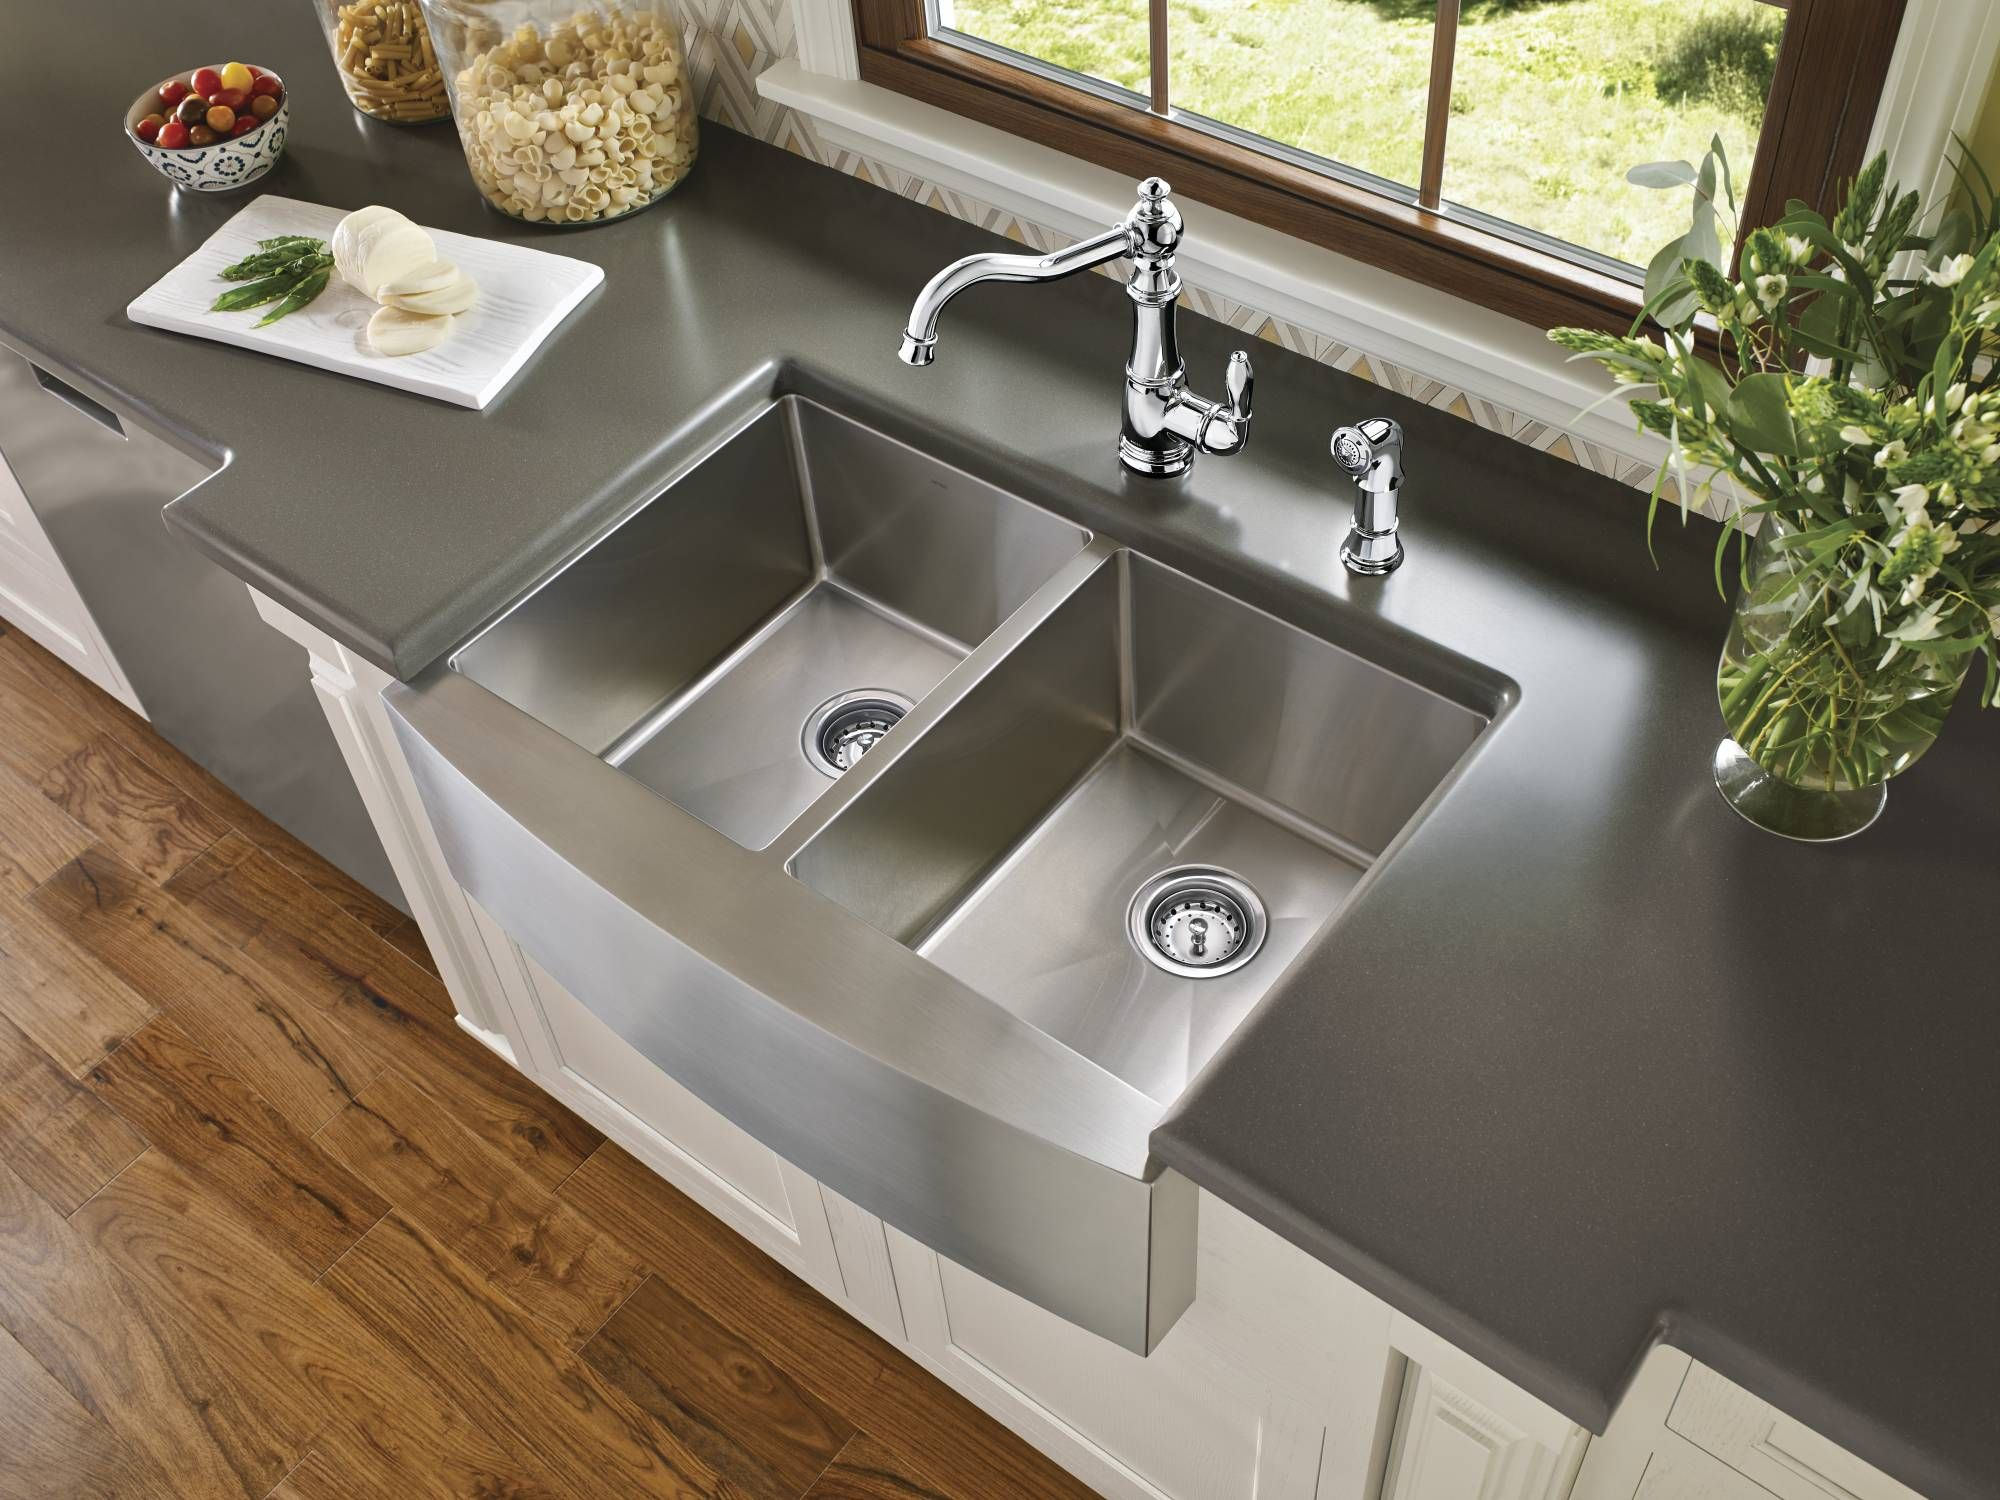 1800 Series Apron Front Sink Kitchen In 2019 Kitchen